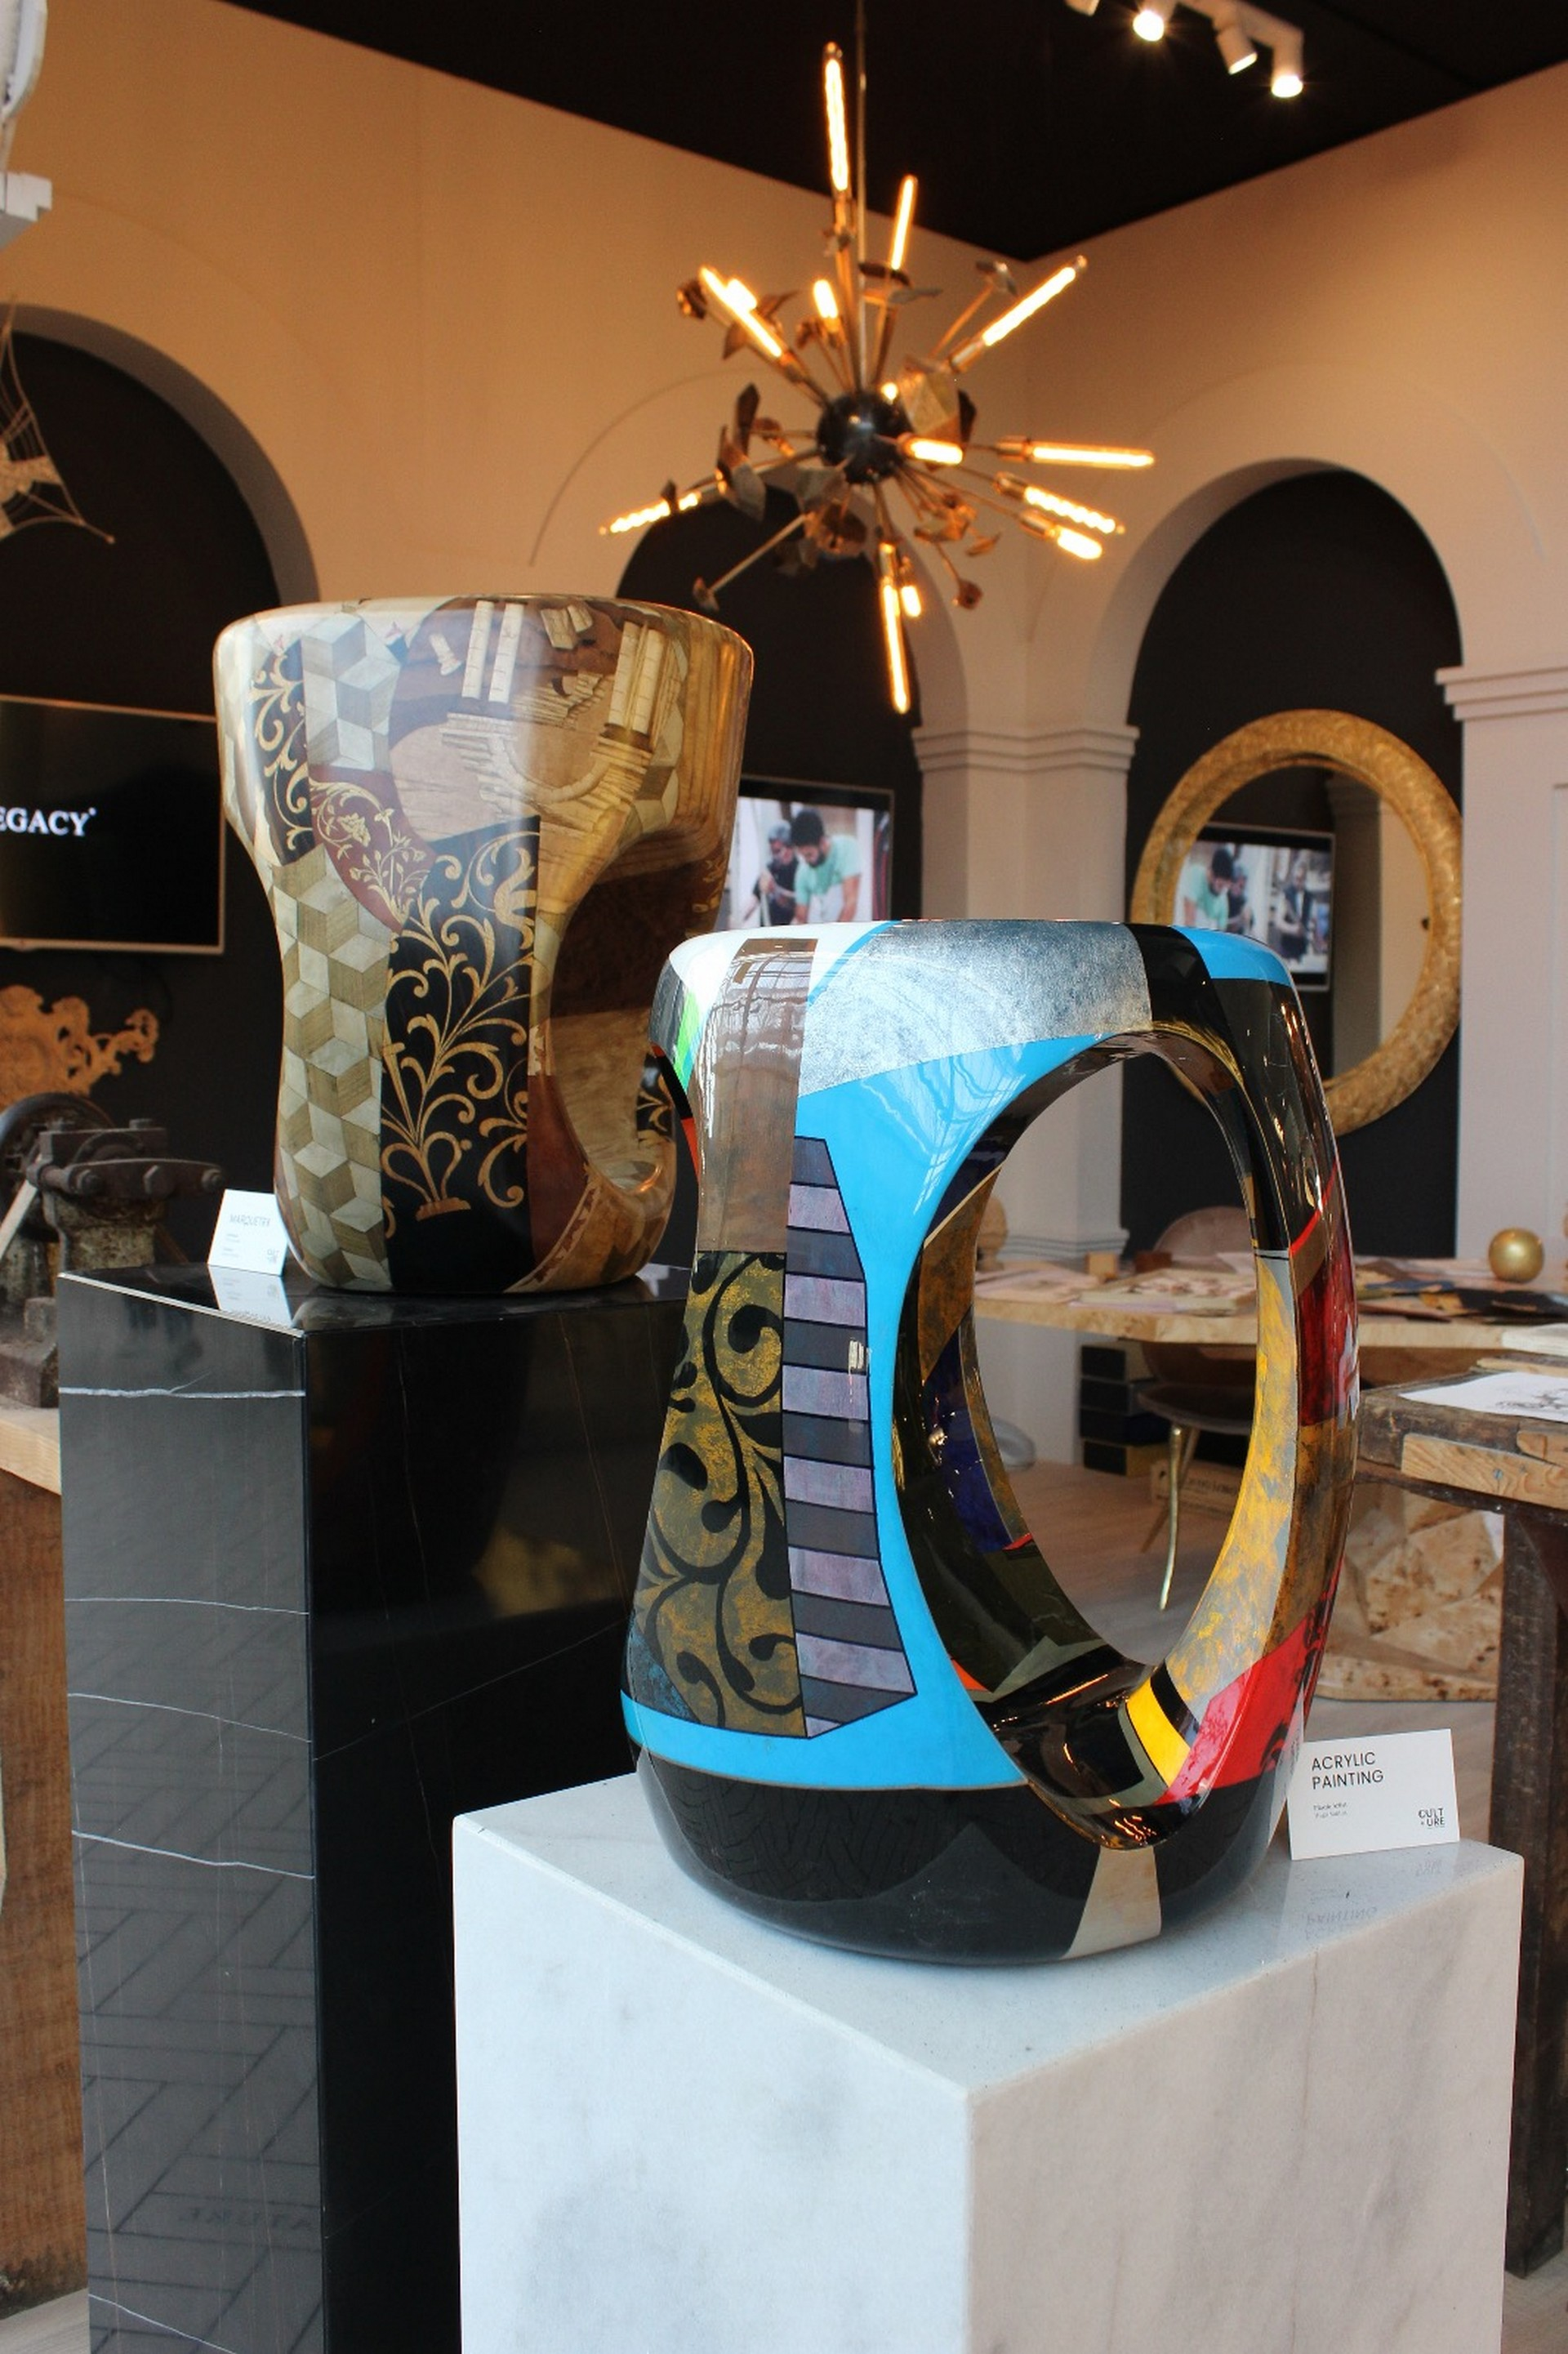 Project CULTURE 9 project culture Project CULTURE's Collection of Craftsmanship Masterpieces: ArtsTool Project CULTURE 9